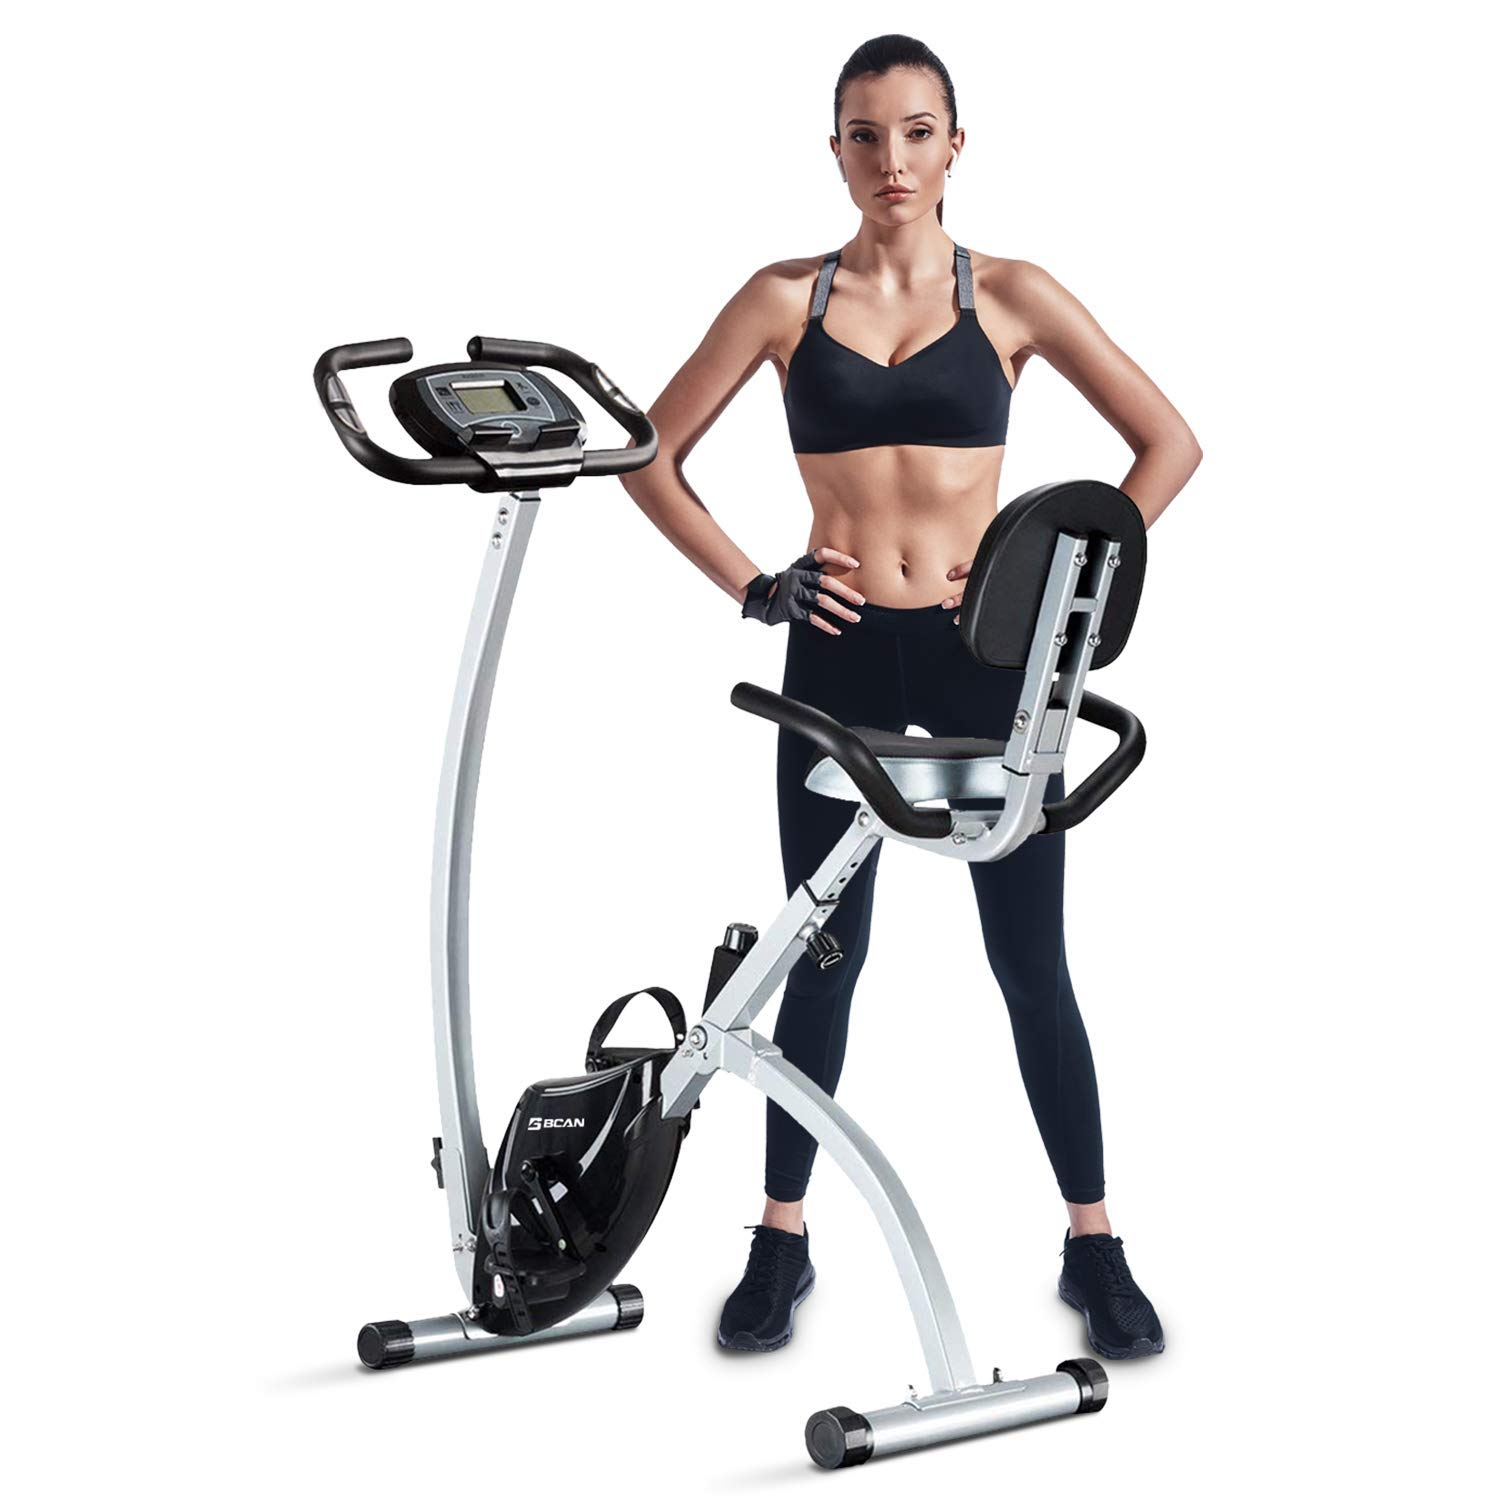 BCAN Folding Exercise Bike, Magnetic Upright Bicycle with Heart Rate, Speed, Distance, Calorie Monitor, 330LBS Support…